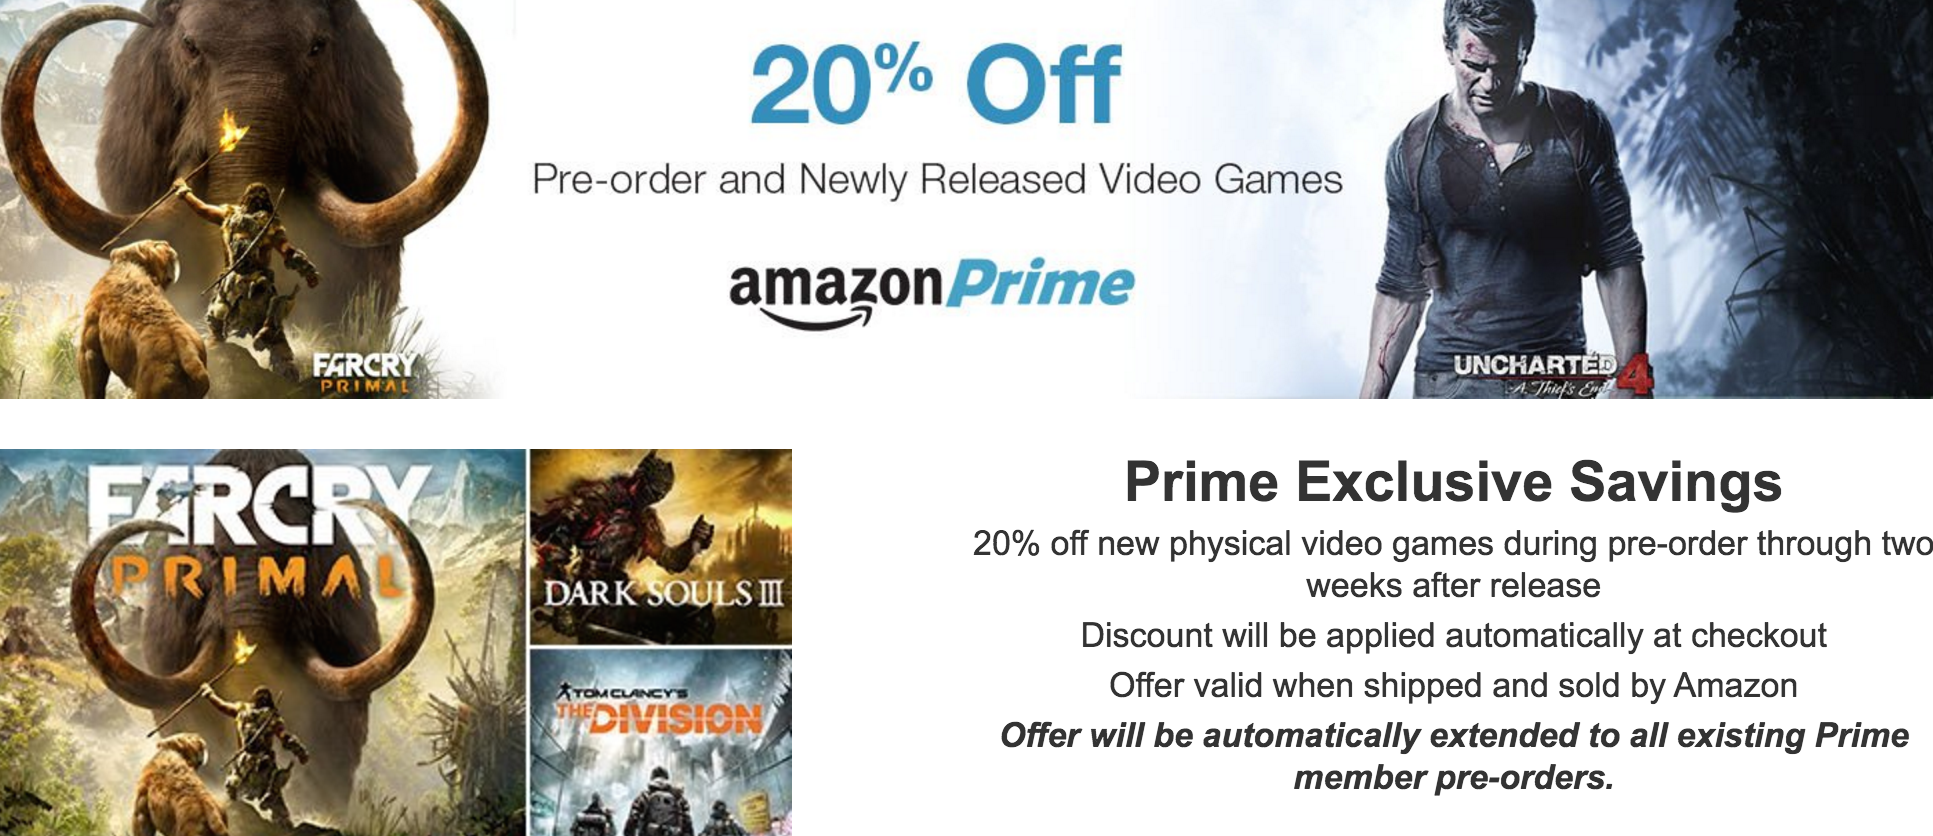 Amazon Prime Adds 20% Discount On Video Game Pre-Orders & New Releases